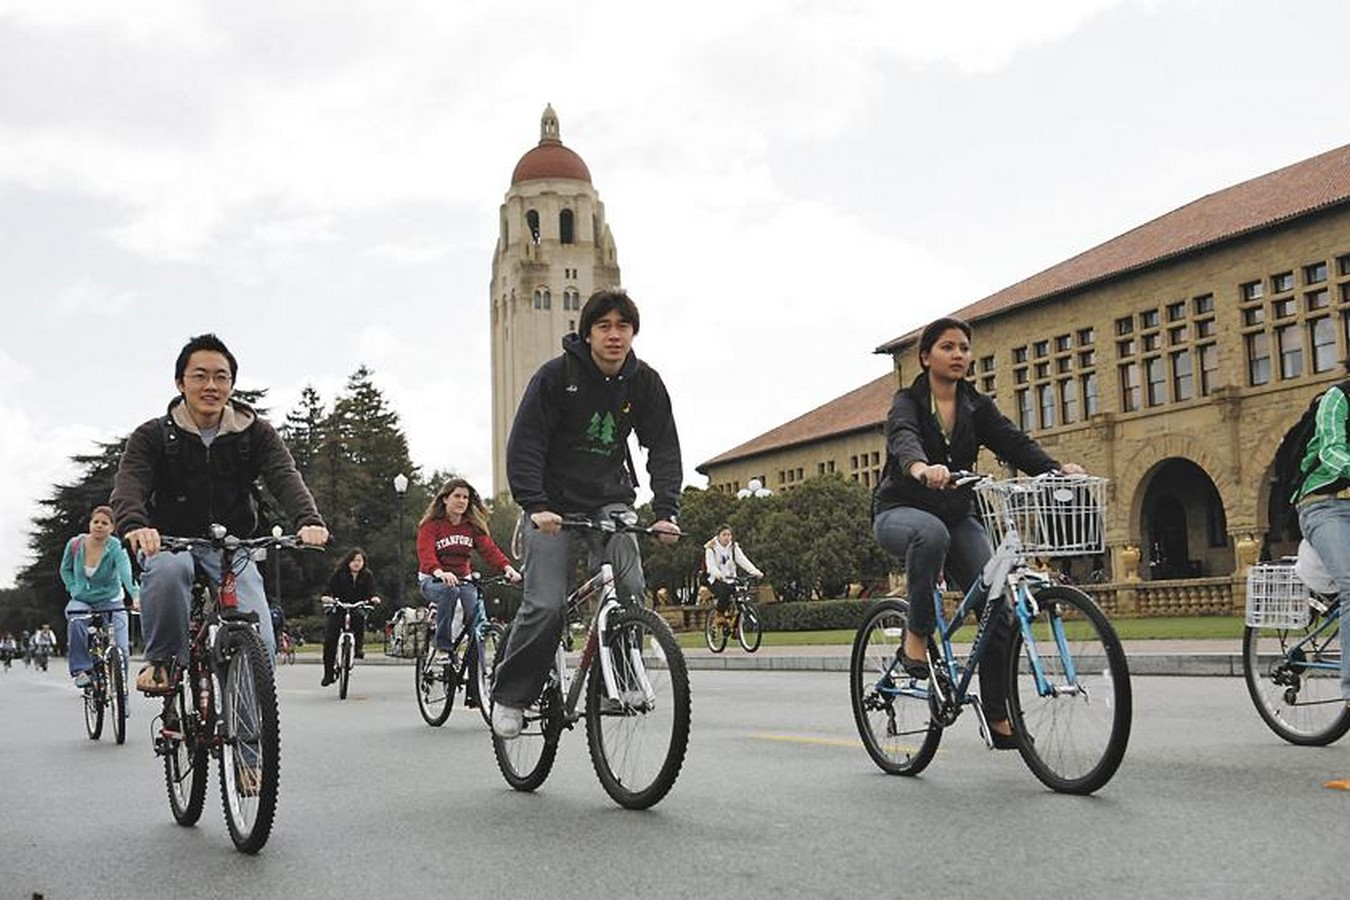 10 Ways to Promote Sustainability on College Campus - Sheet5